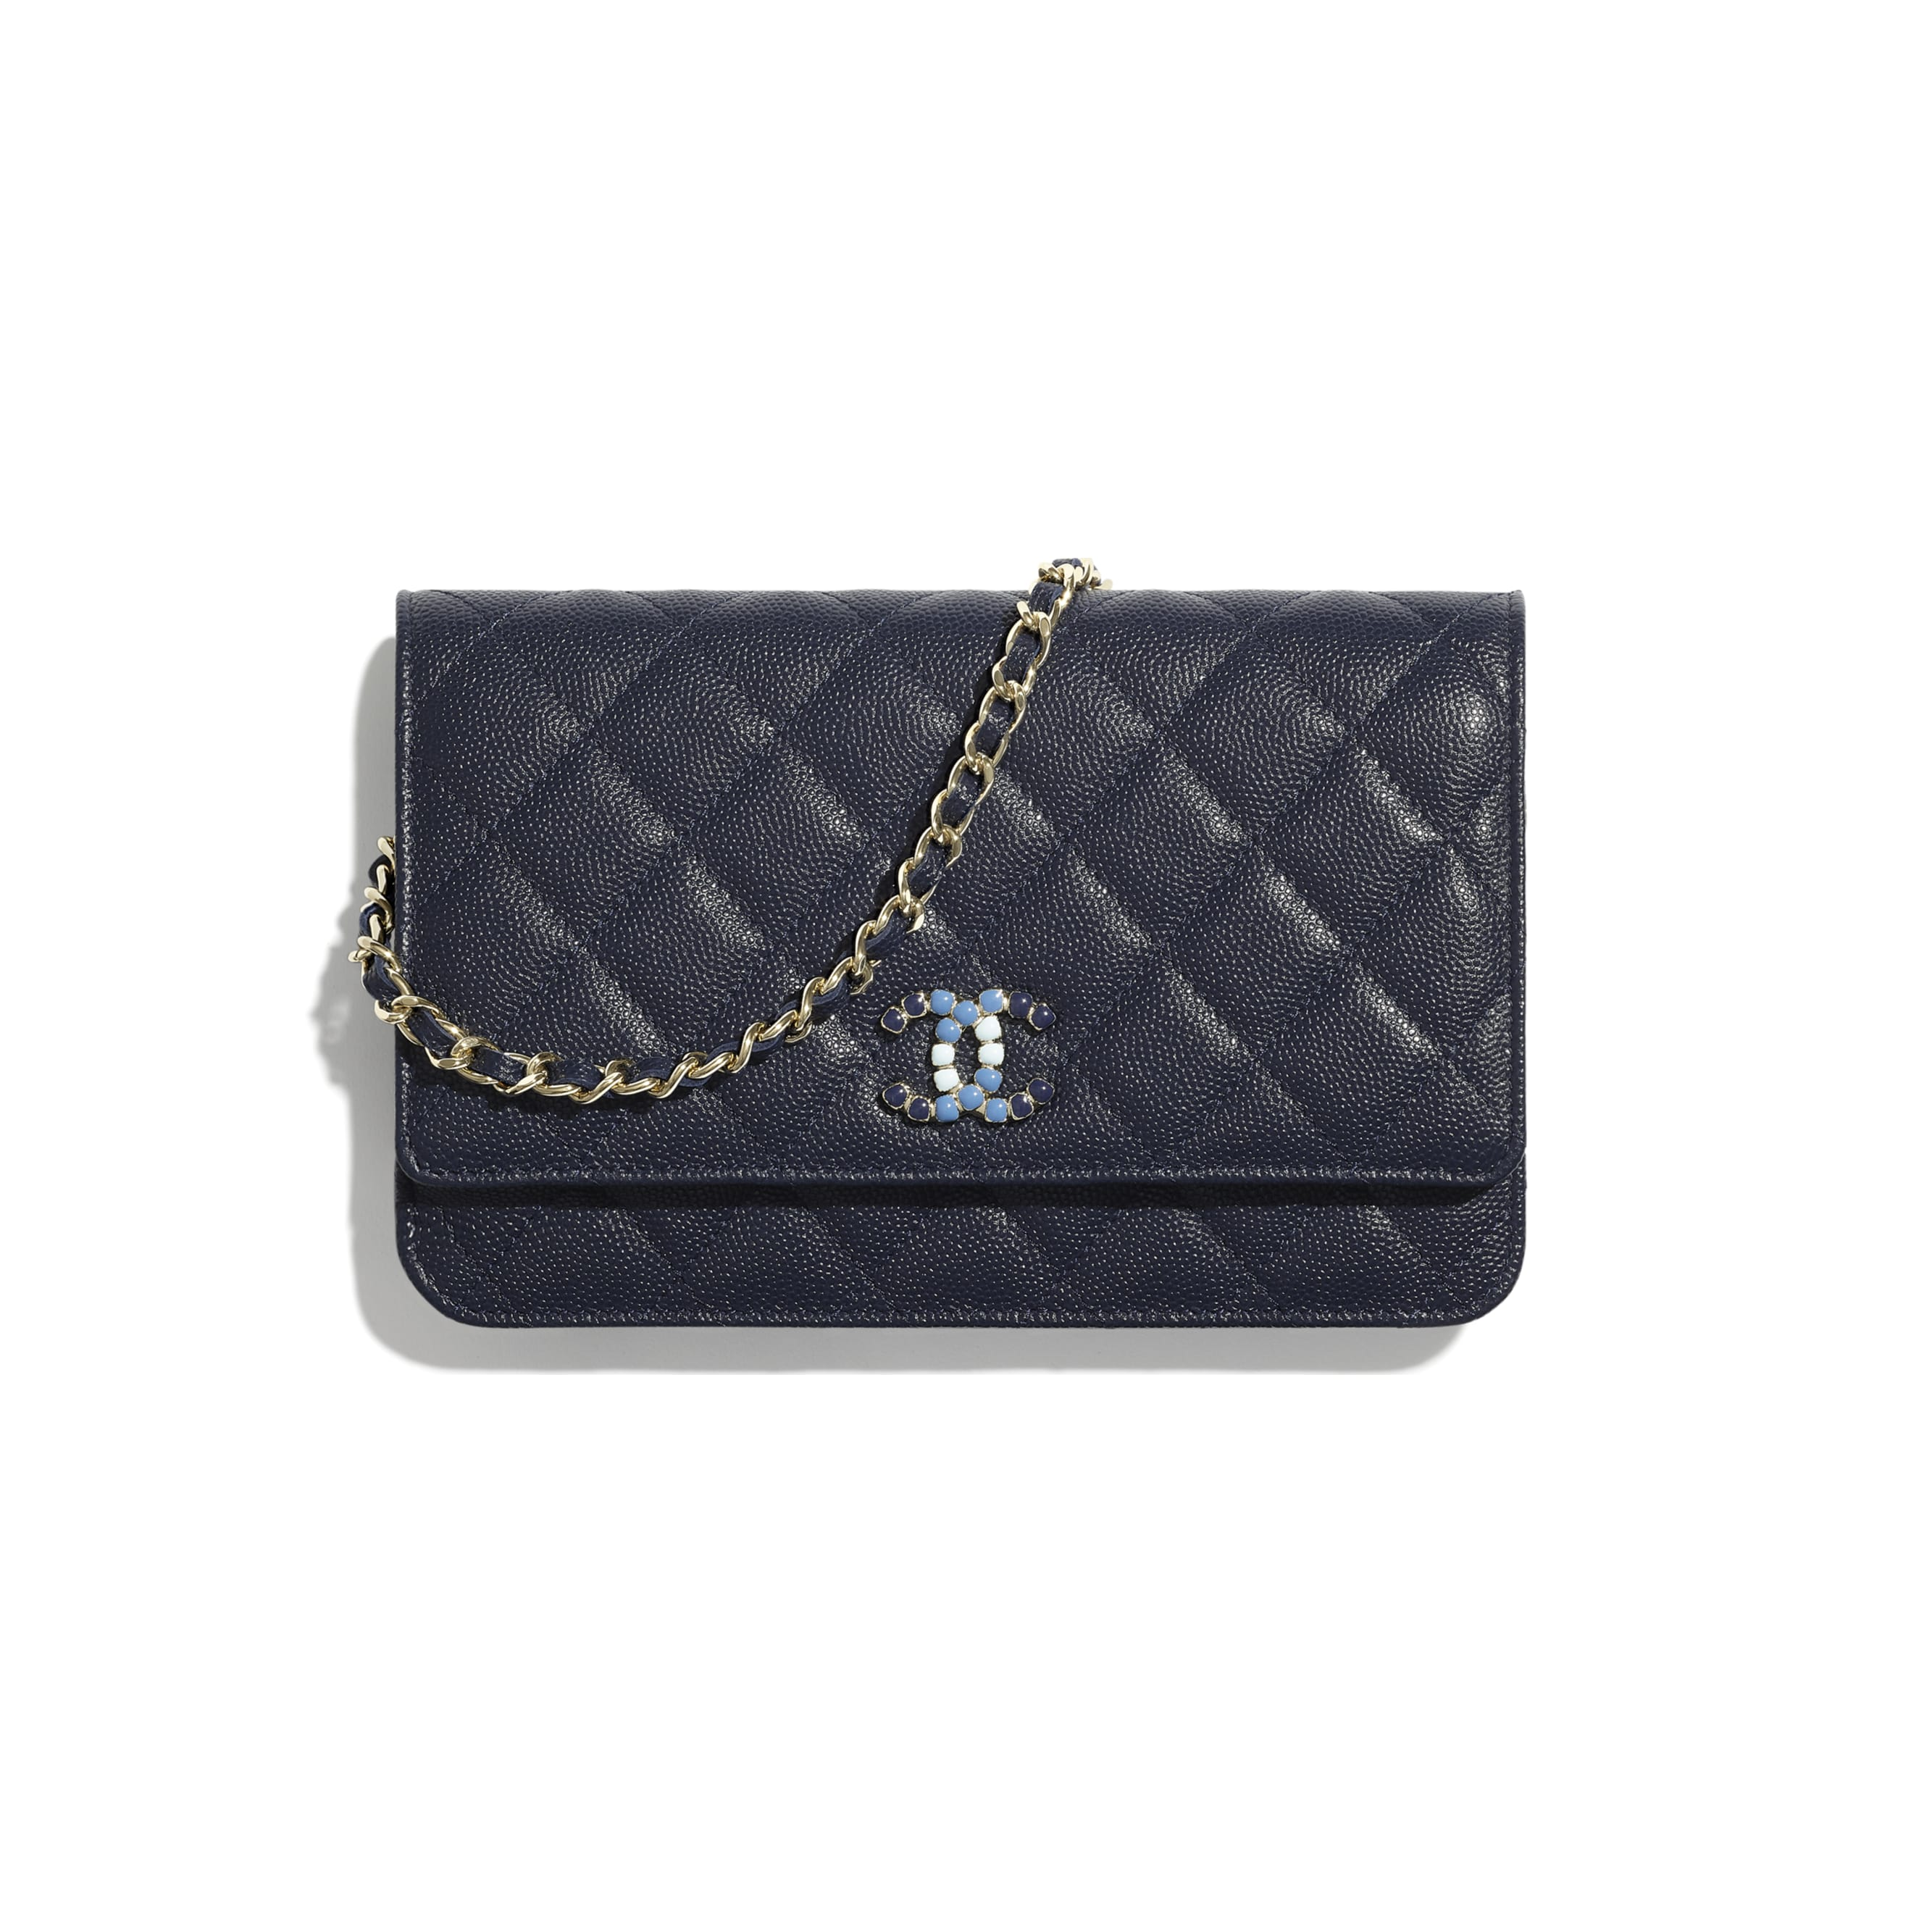 Wallet On Chain - Navy Blue - Grained Calfskin & Laquered Gold-Tone Metal - CHANEL - Default view - see standard sized version